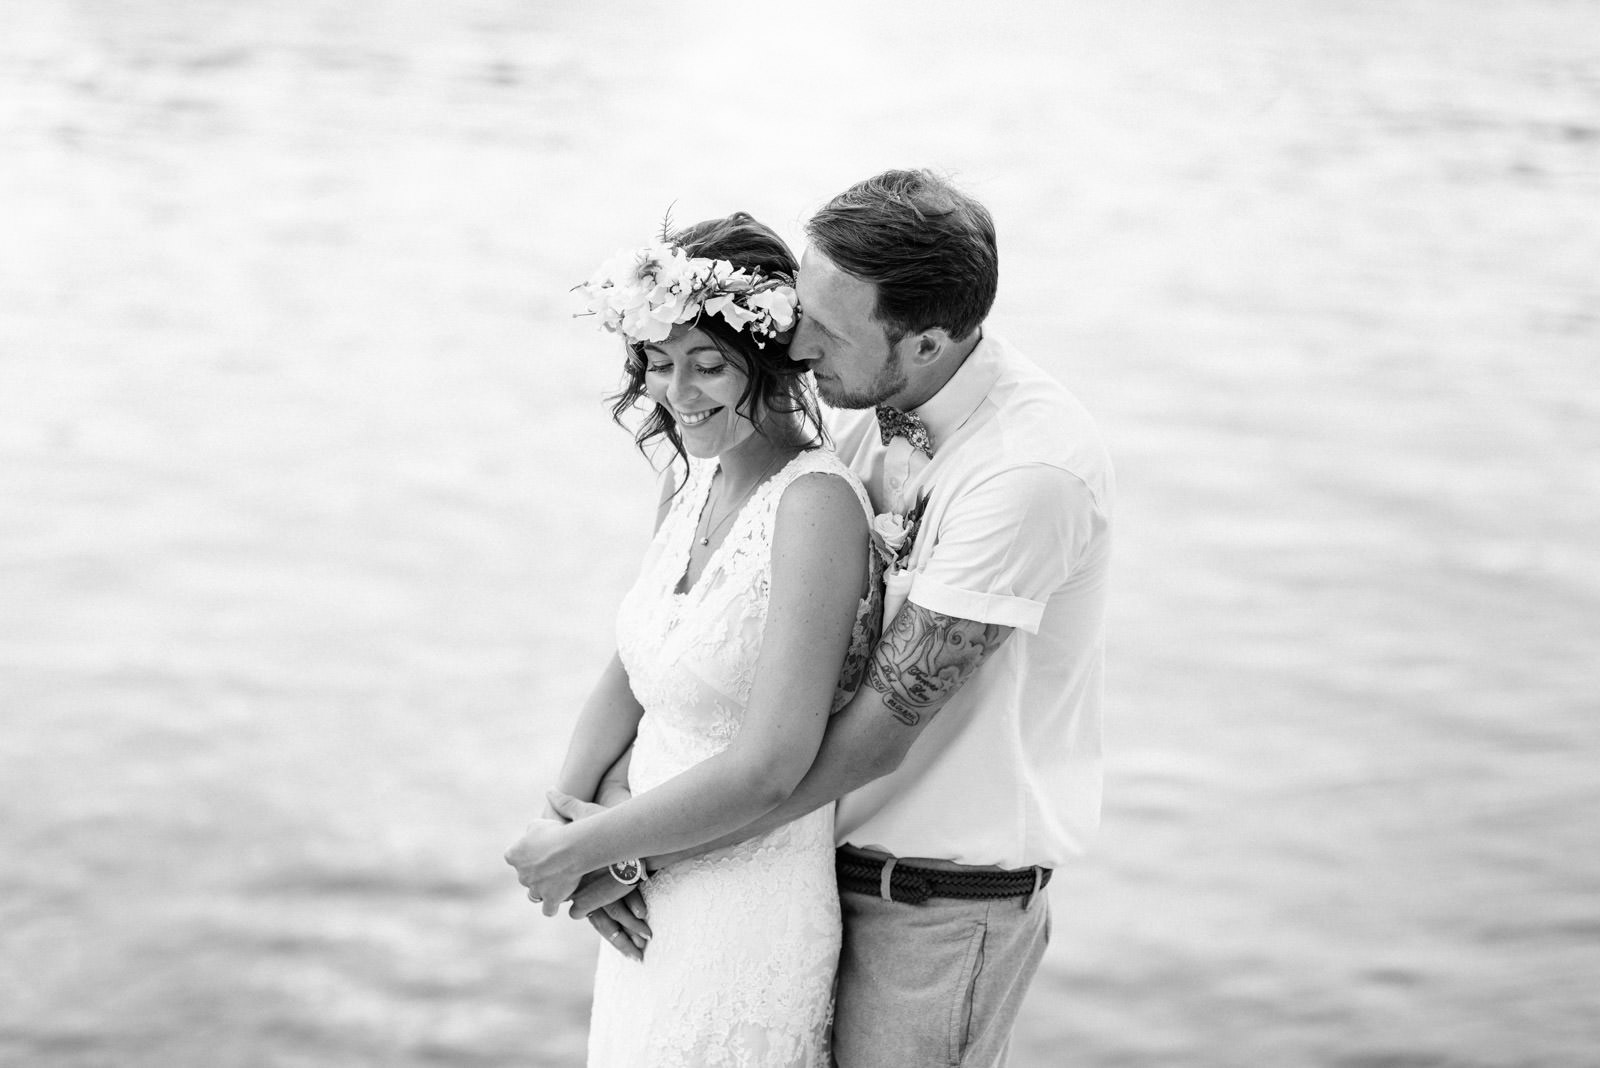 Assos wedding photographer